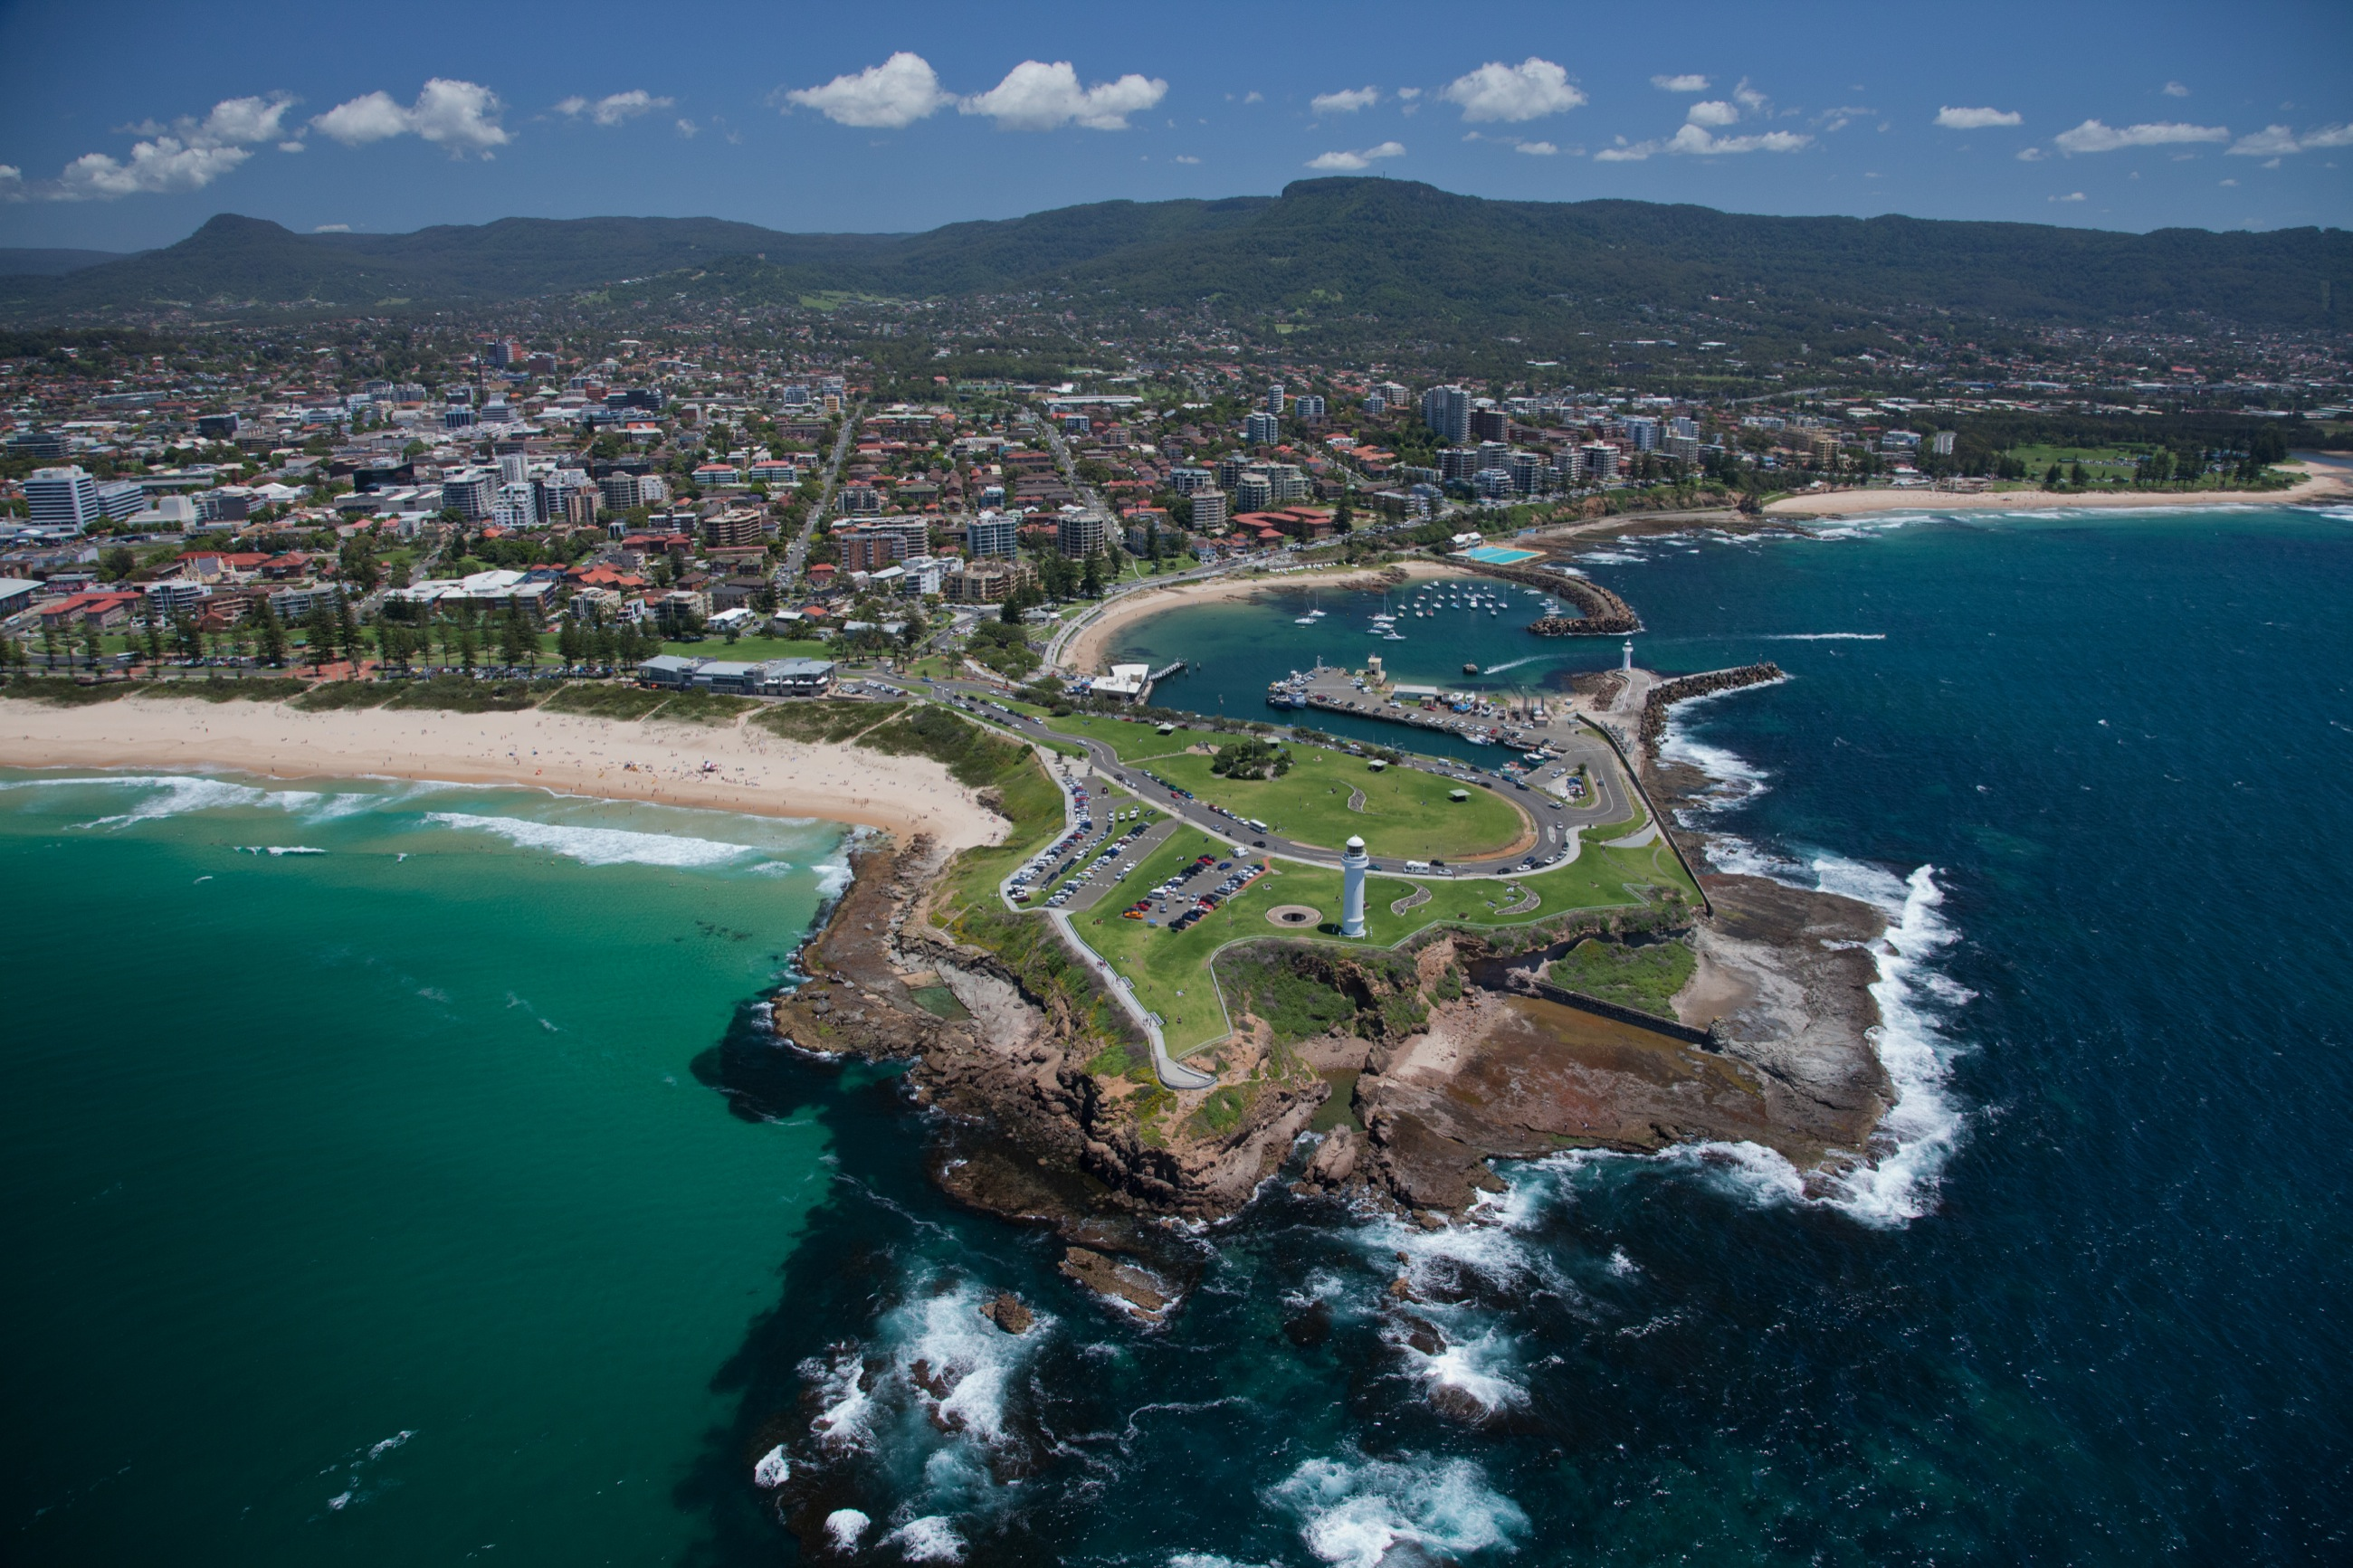 Aerial photograph of central Wollongong